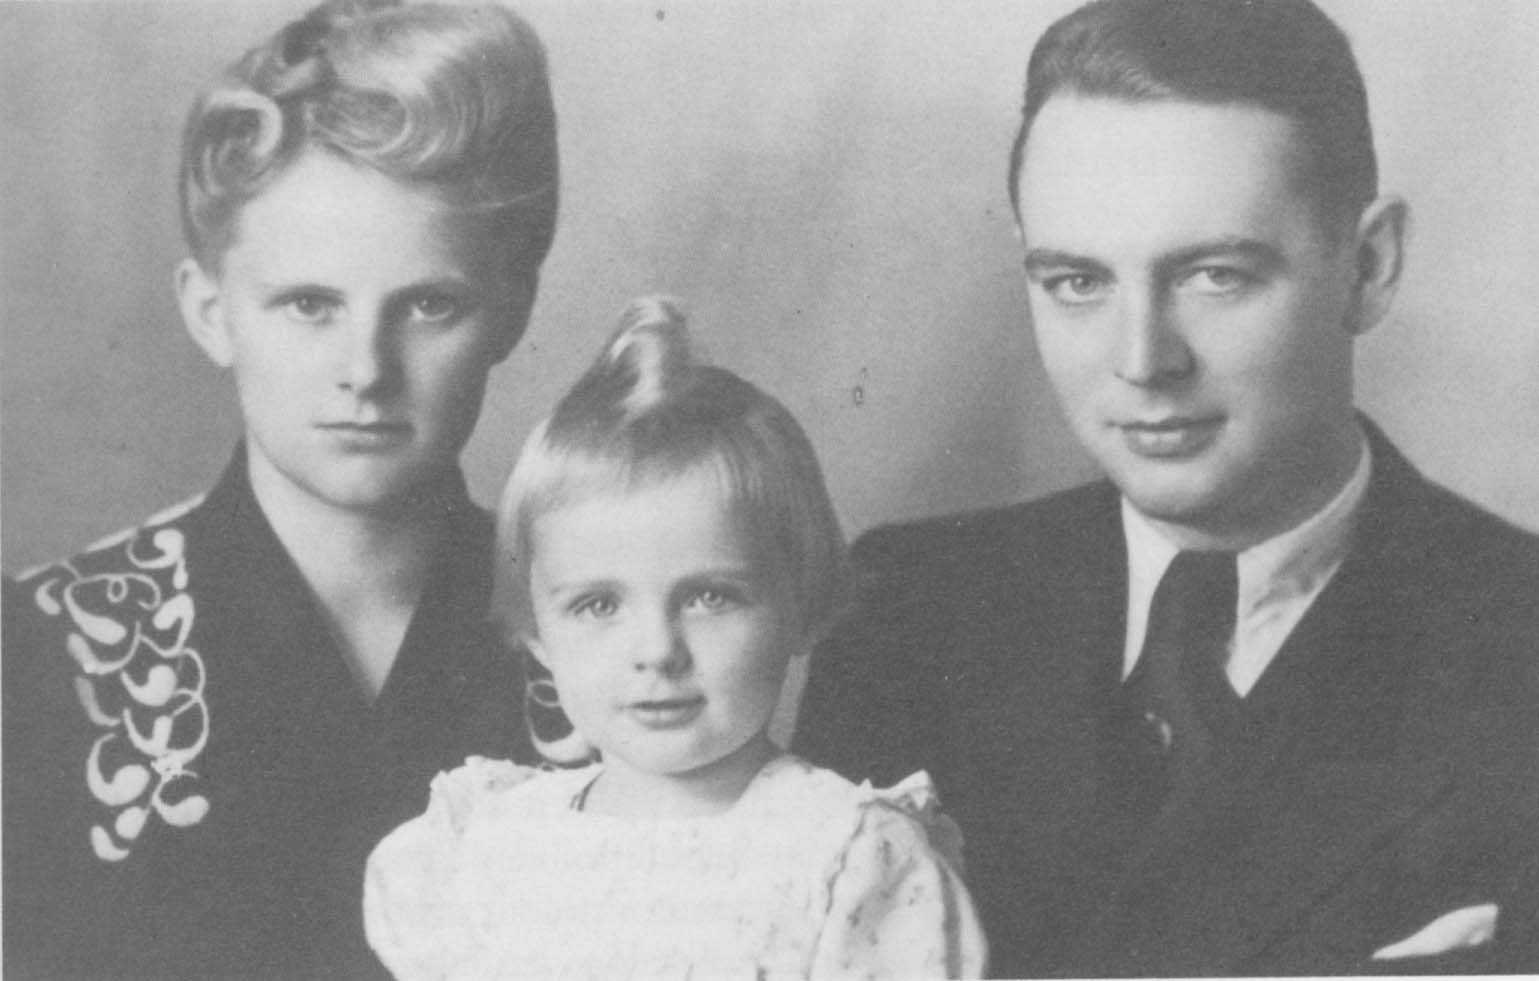 Berthold and Else Beitz with their daughter Barbara, 1942 in Boryslaw. The photography stems from the Jewish Photographer Holzmann.